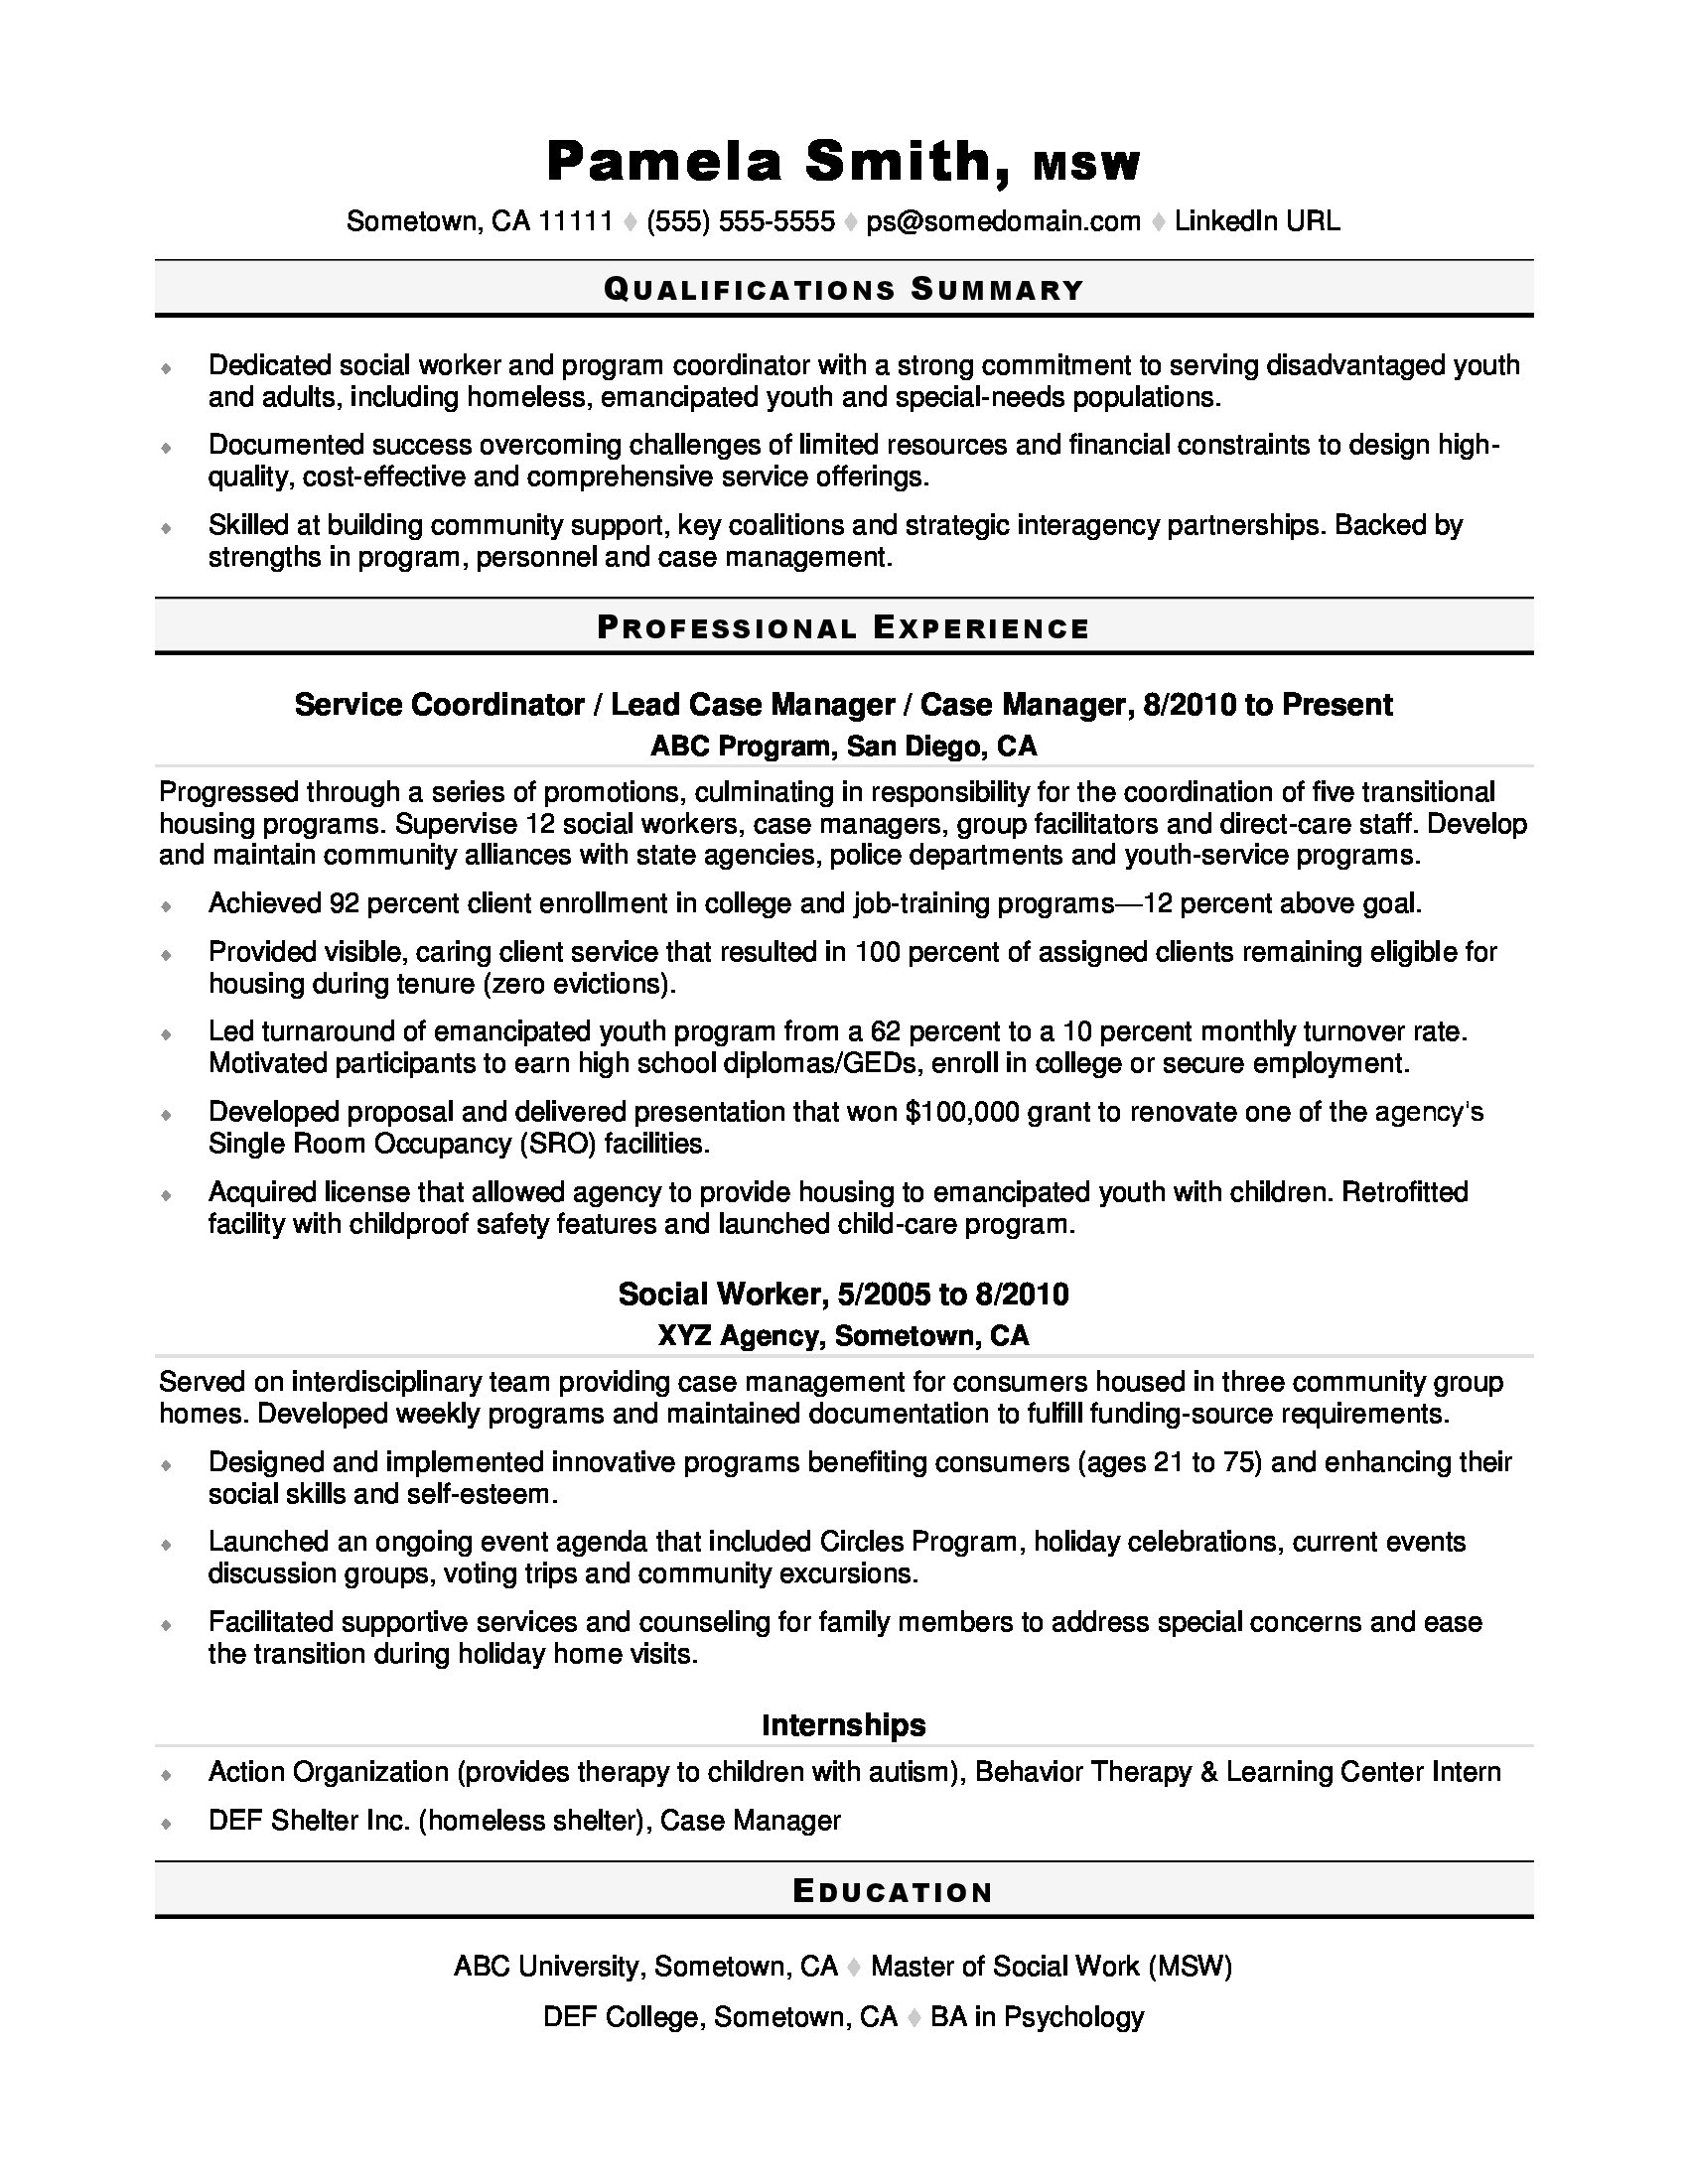 Social Worker Resume Sample | Monster com